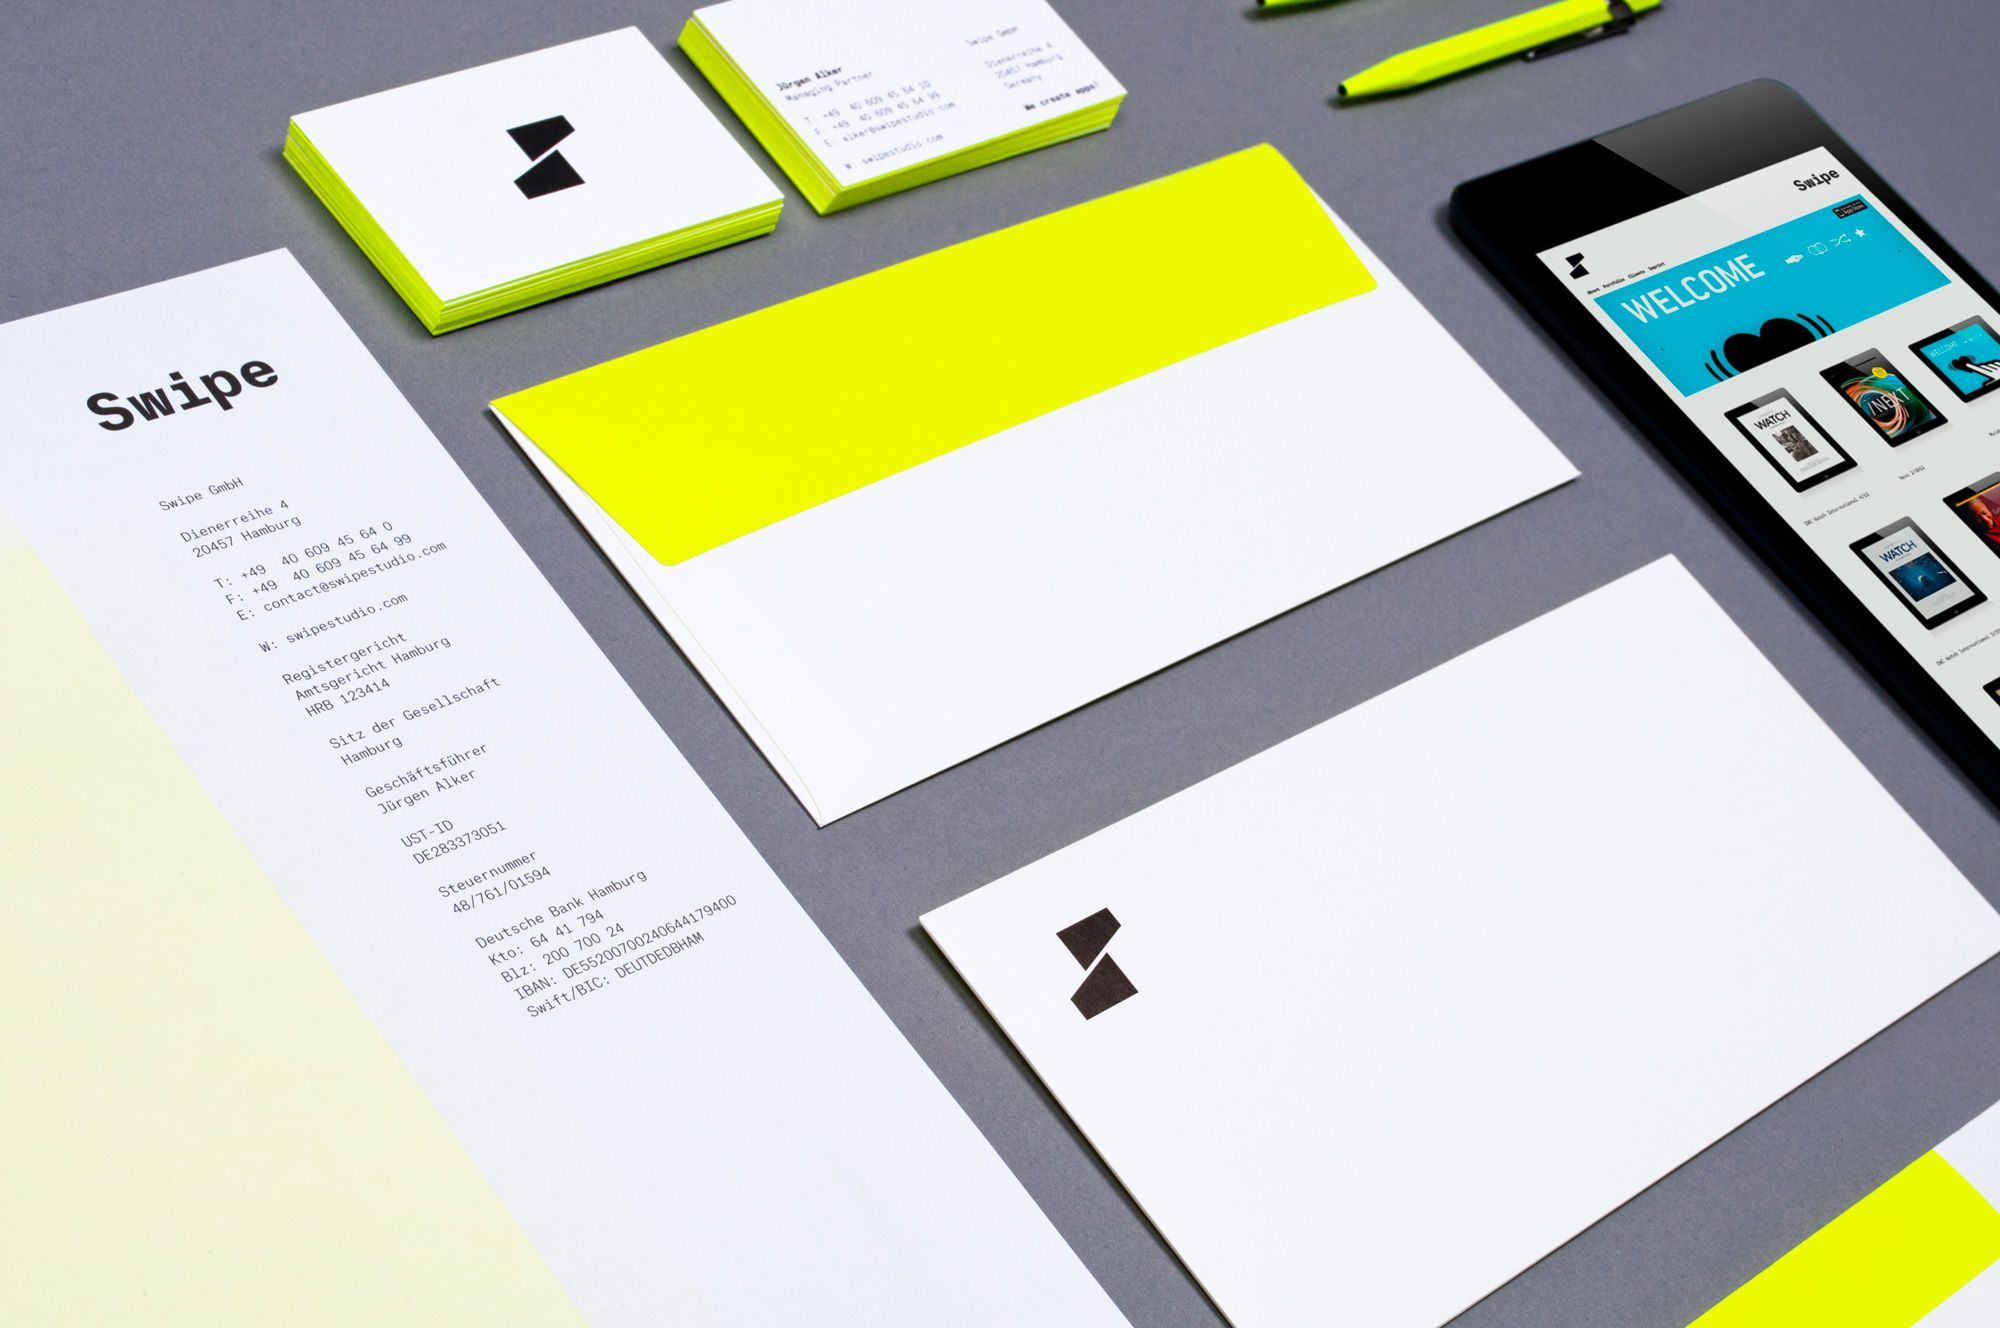 Swipe Business Card Letterhead And Envelope With Neon Yellow Www Swipestudio Com Graphic Design Inspiration Branding App Design Layout Branding